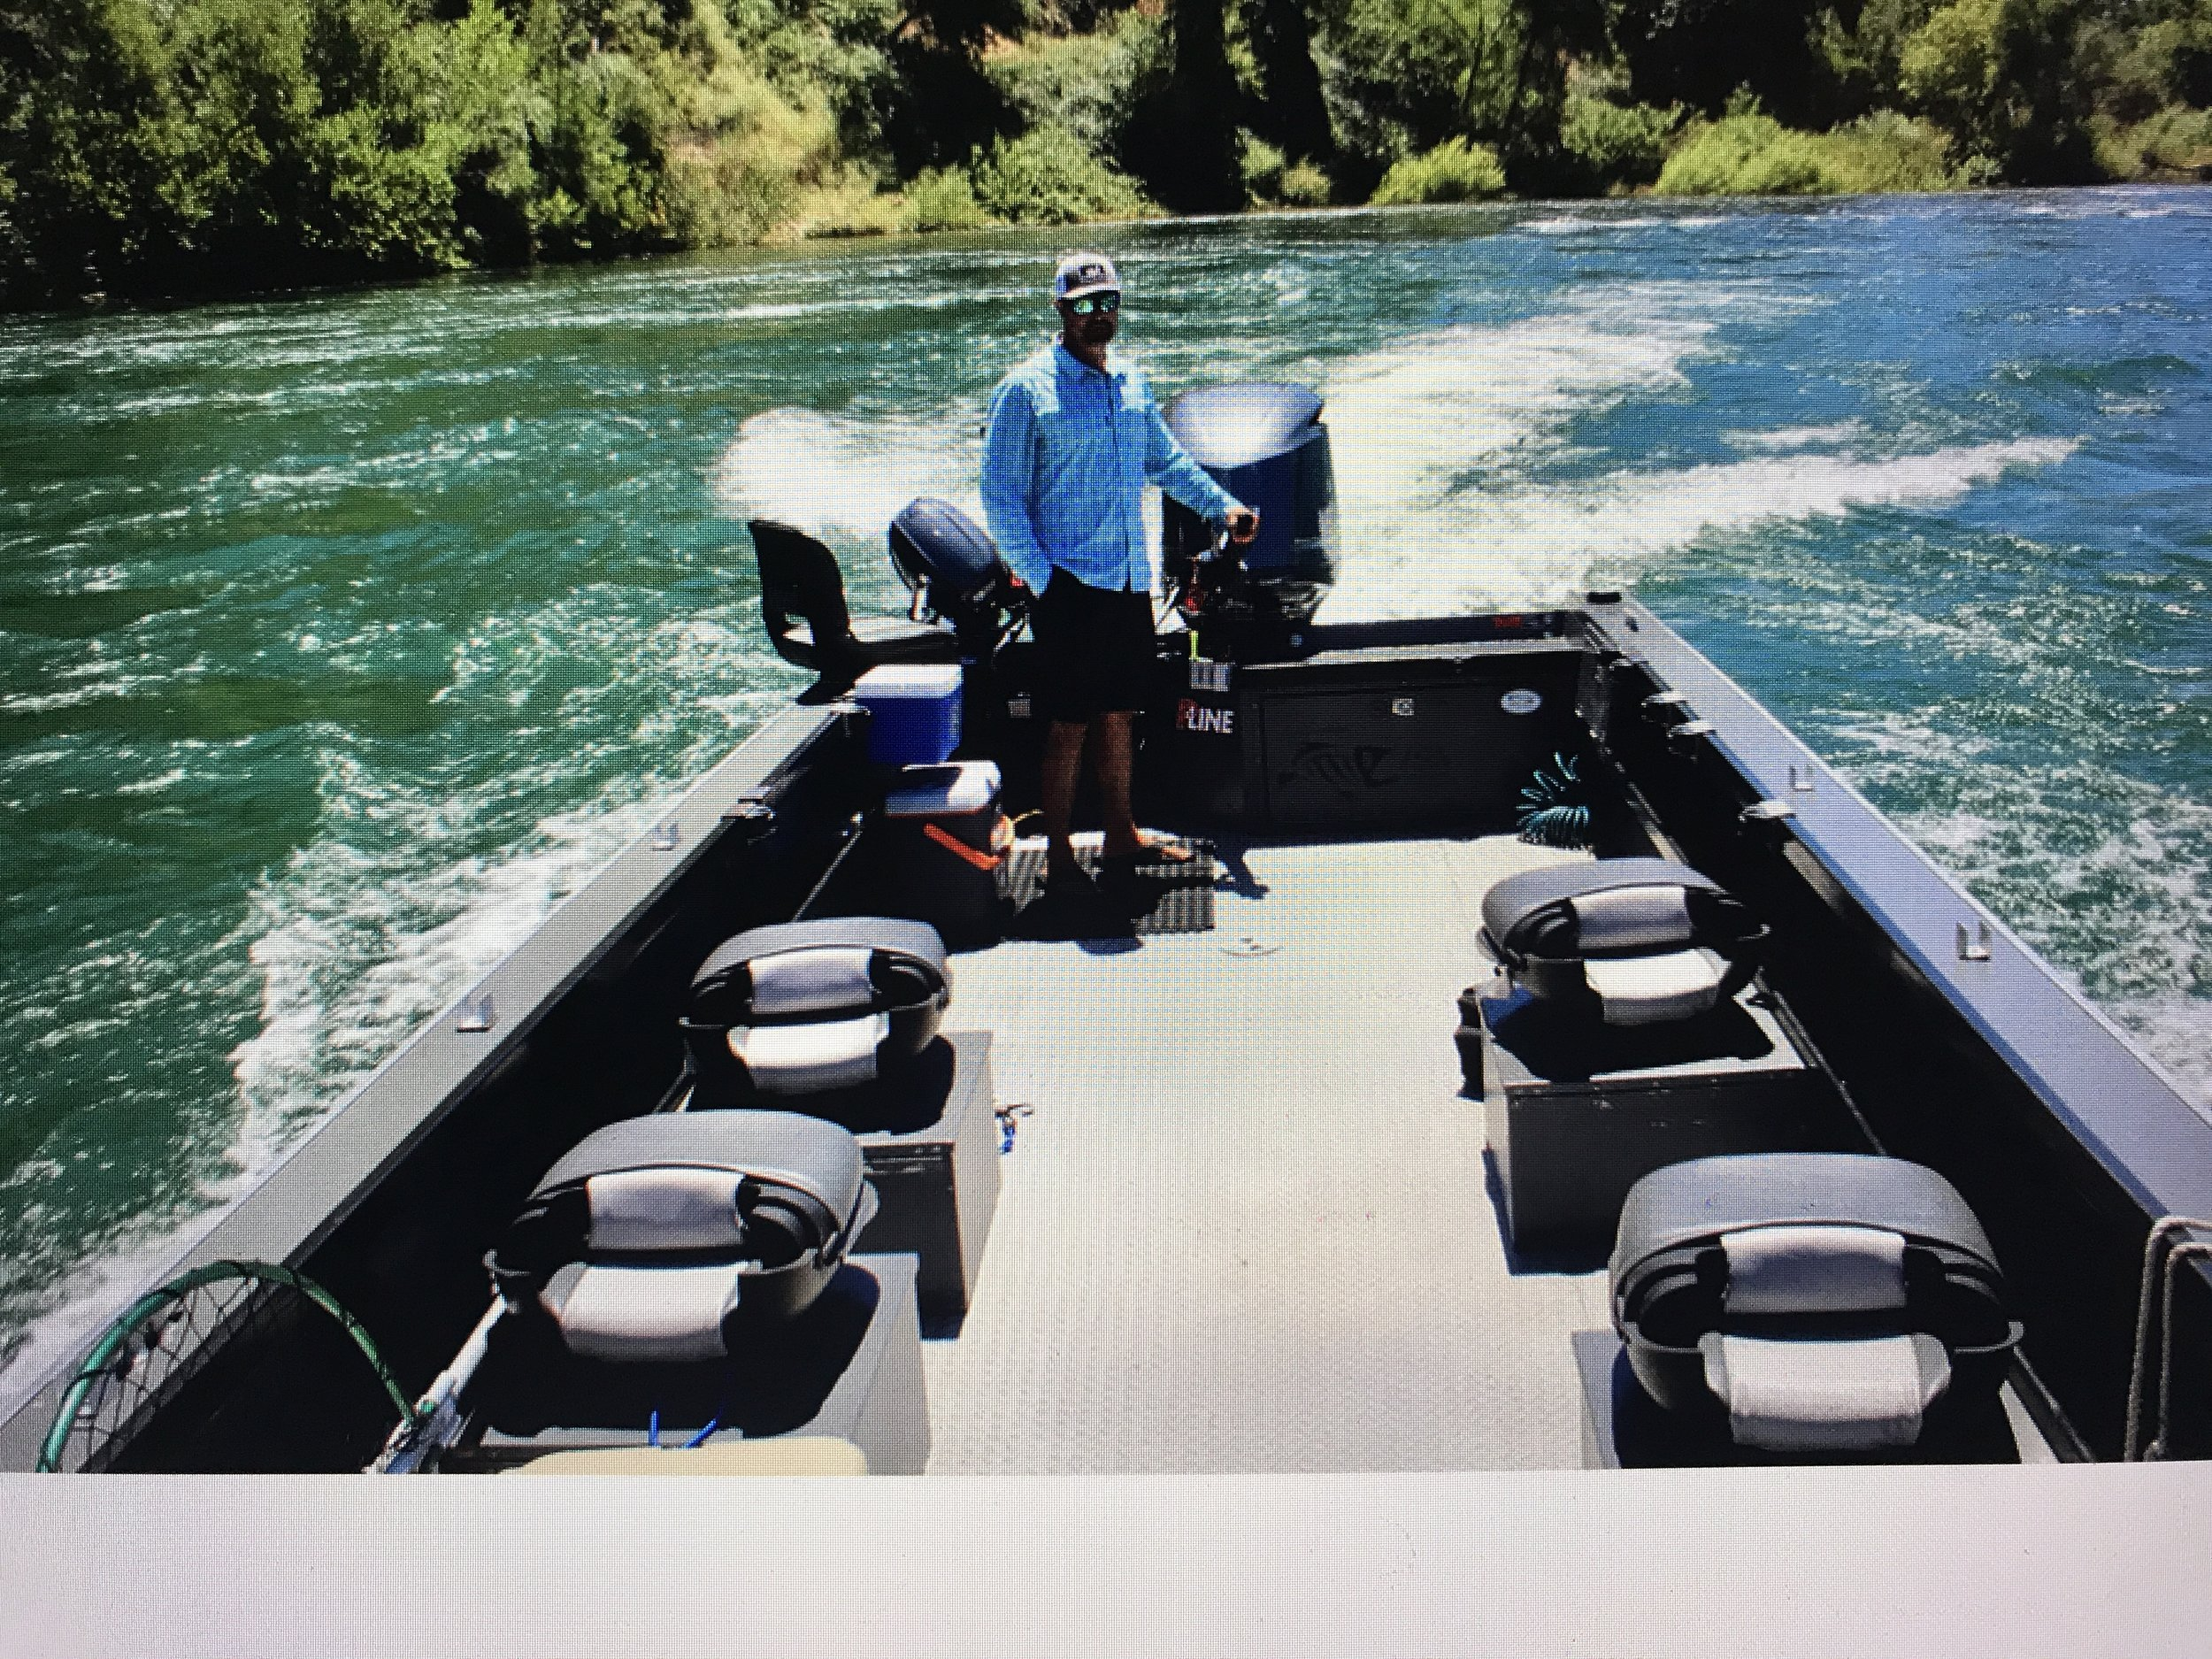 Lots of room for your group in Justin boat this year while fishing for Sacramento River King salmon